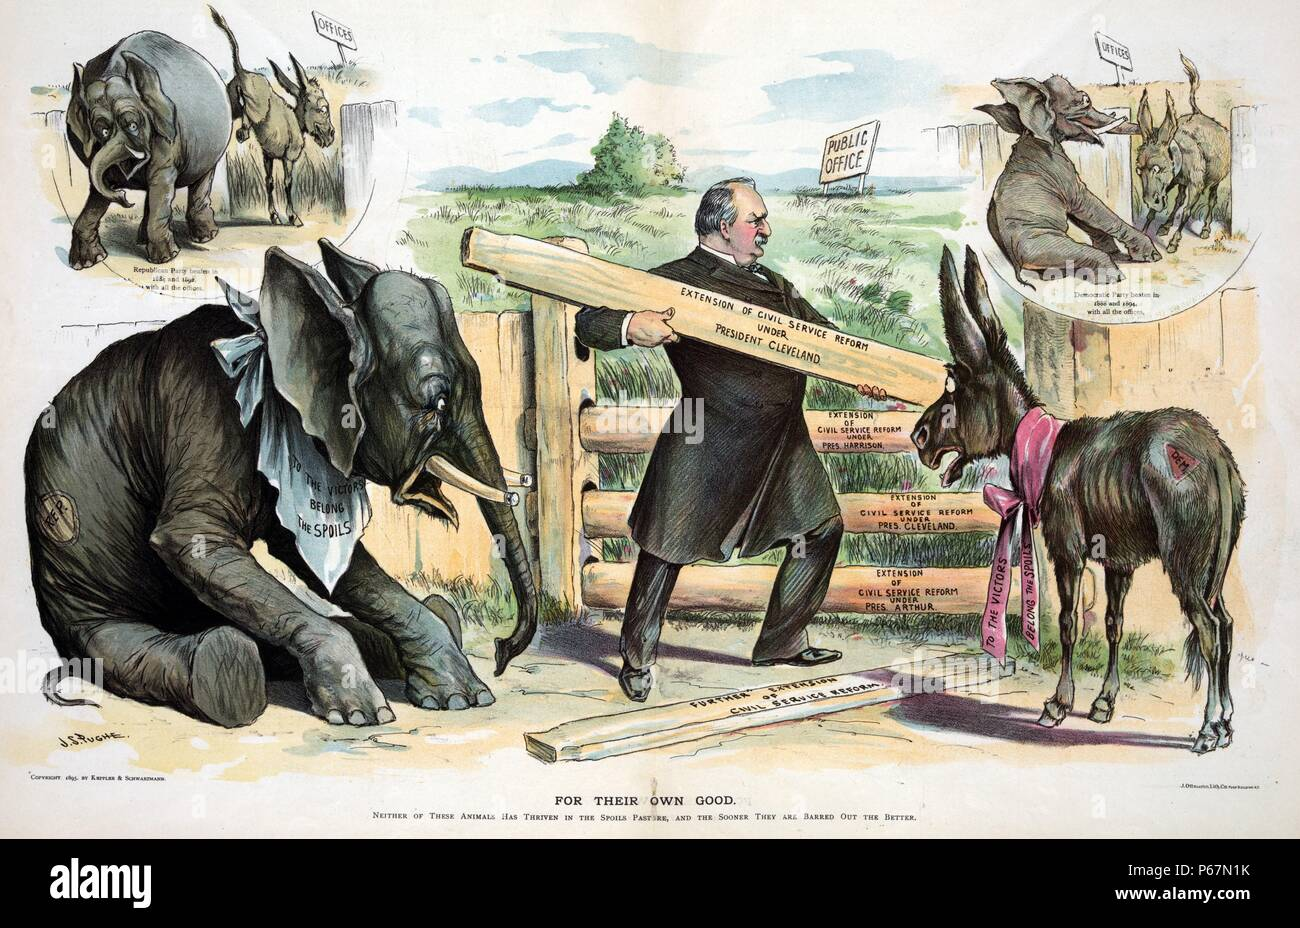 For their own good' President Cleveland adding boards labelled 'Extension of Civil Service Reform under President Cleveland' to a fence with boards labelled 'Extension of Civil Service Reform under Pres. Harrison', 'Extension of Civil Service Reform under Pres. Cleveland', and 'Extension of Civil Service Reform under Pres. Arthur', that encloses a pasture labelled 'Public Office'; watching him are the Republican Elephant and the Democratic Donkey, each wearing ribbons that state 'To the Victors Belong the Spoils'. - Stock Image